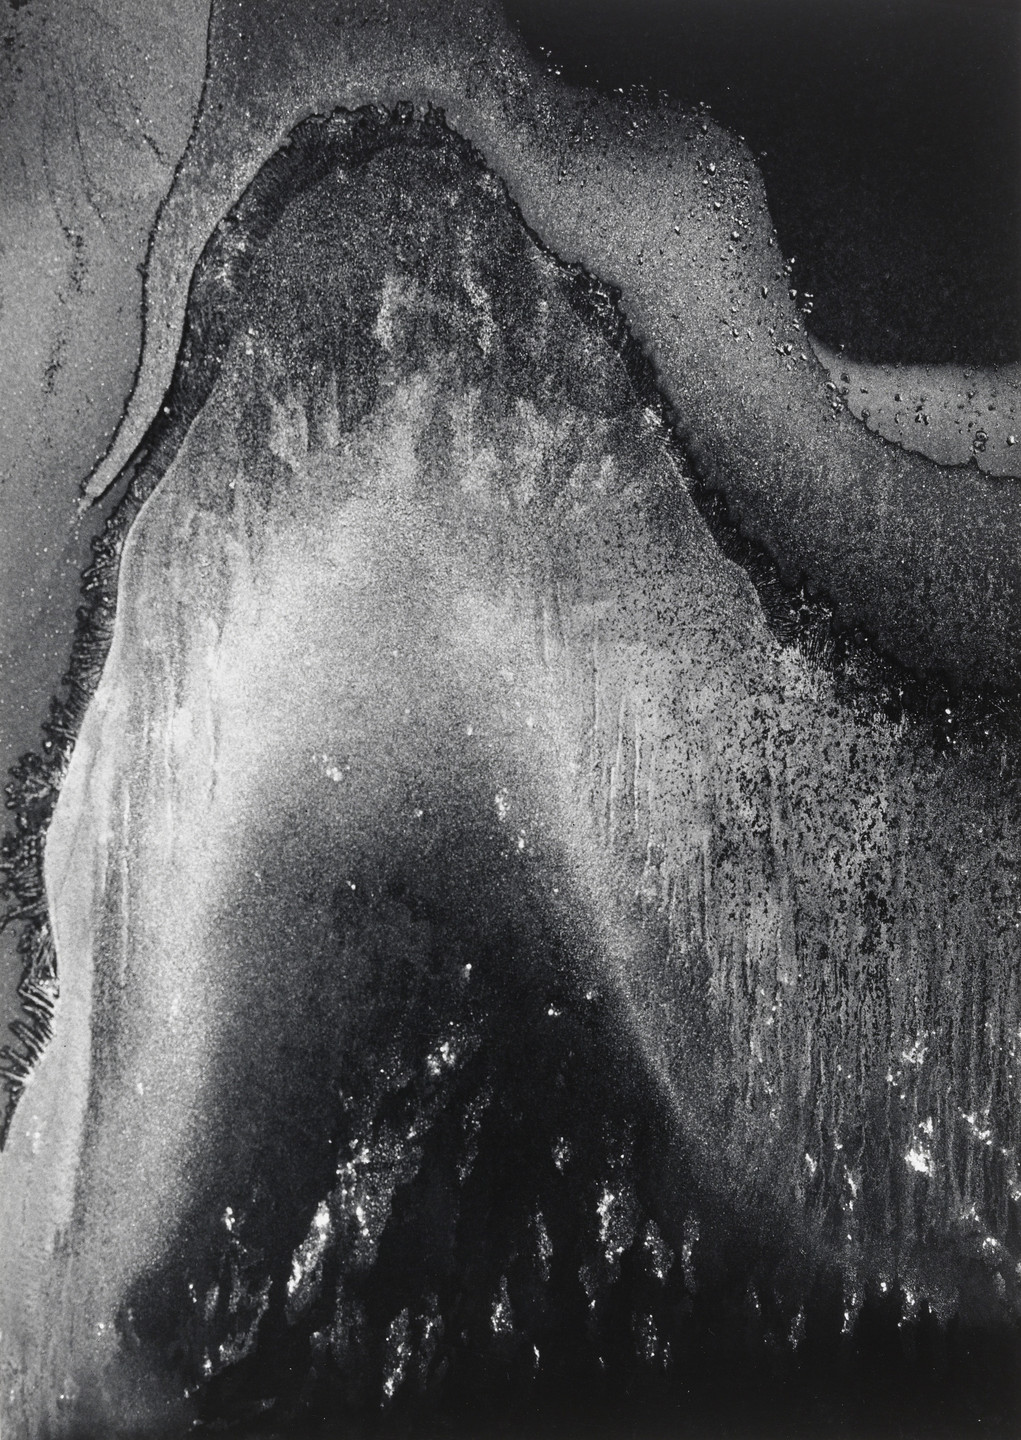 Minor White. Frost Forms: Sound of One Hand. 1959